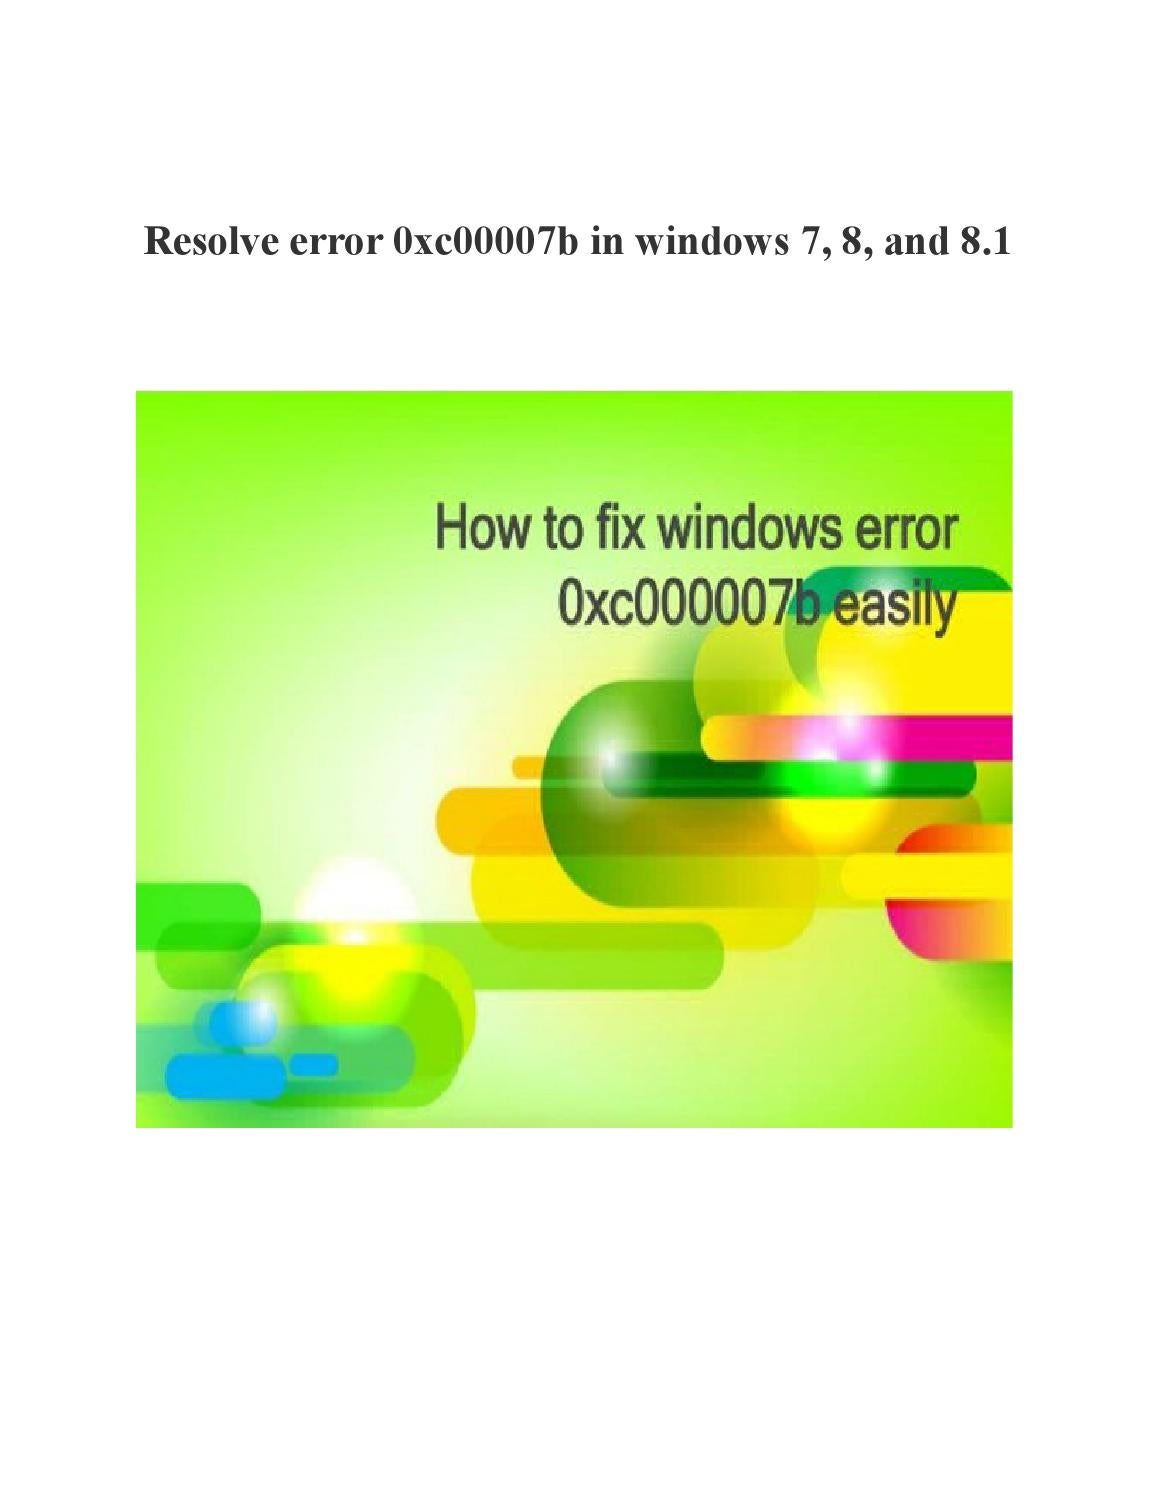 Resolve error 0xc00007b in windows 7, 8, and 8 1 by Fix PC